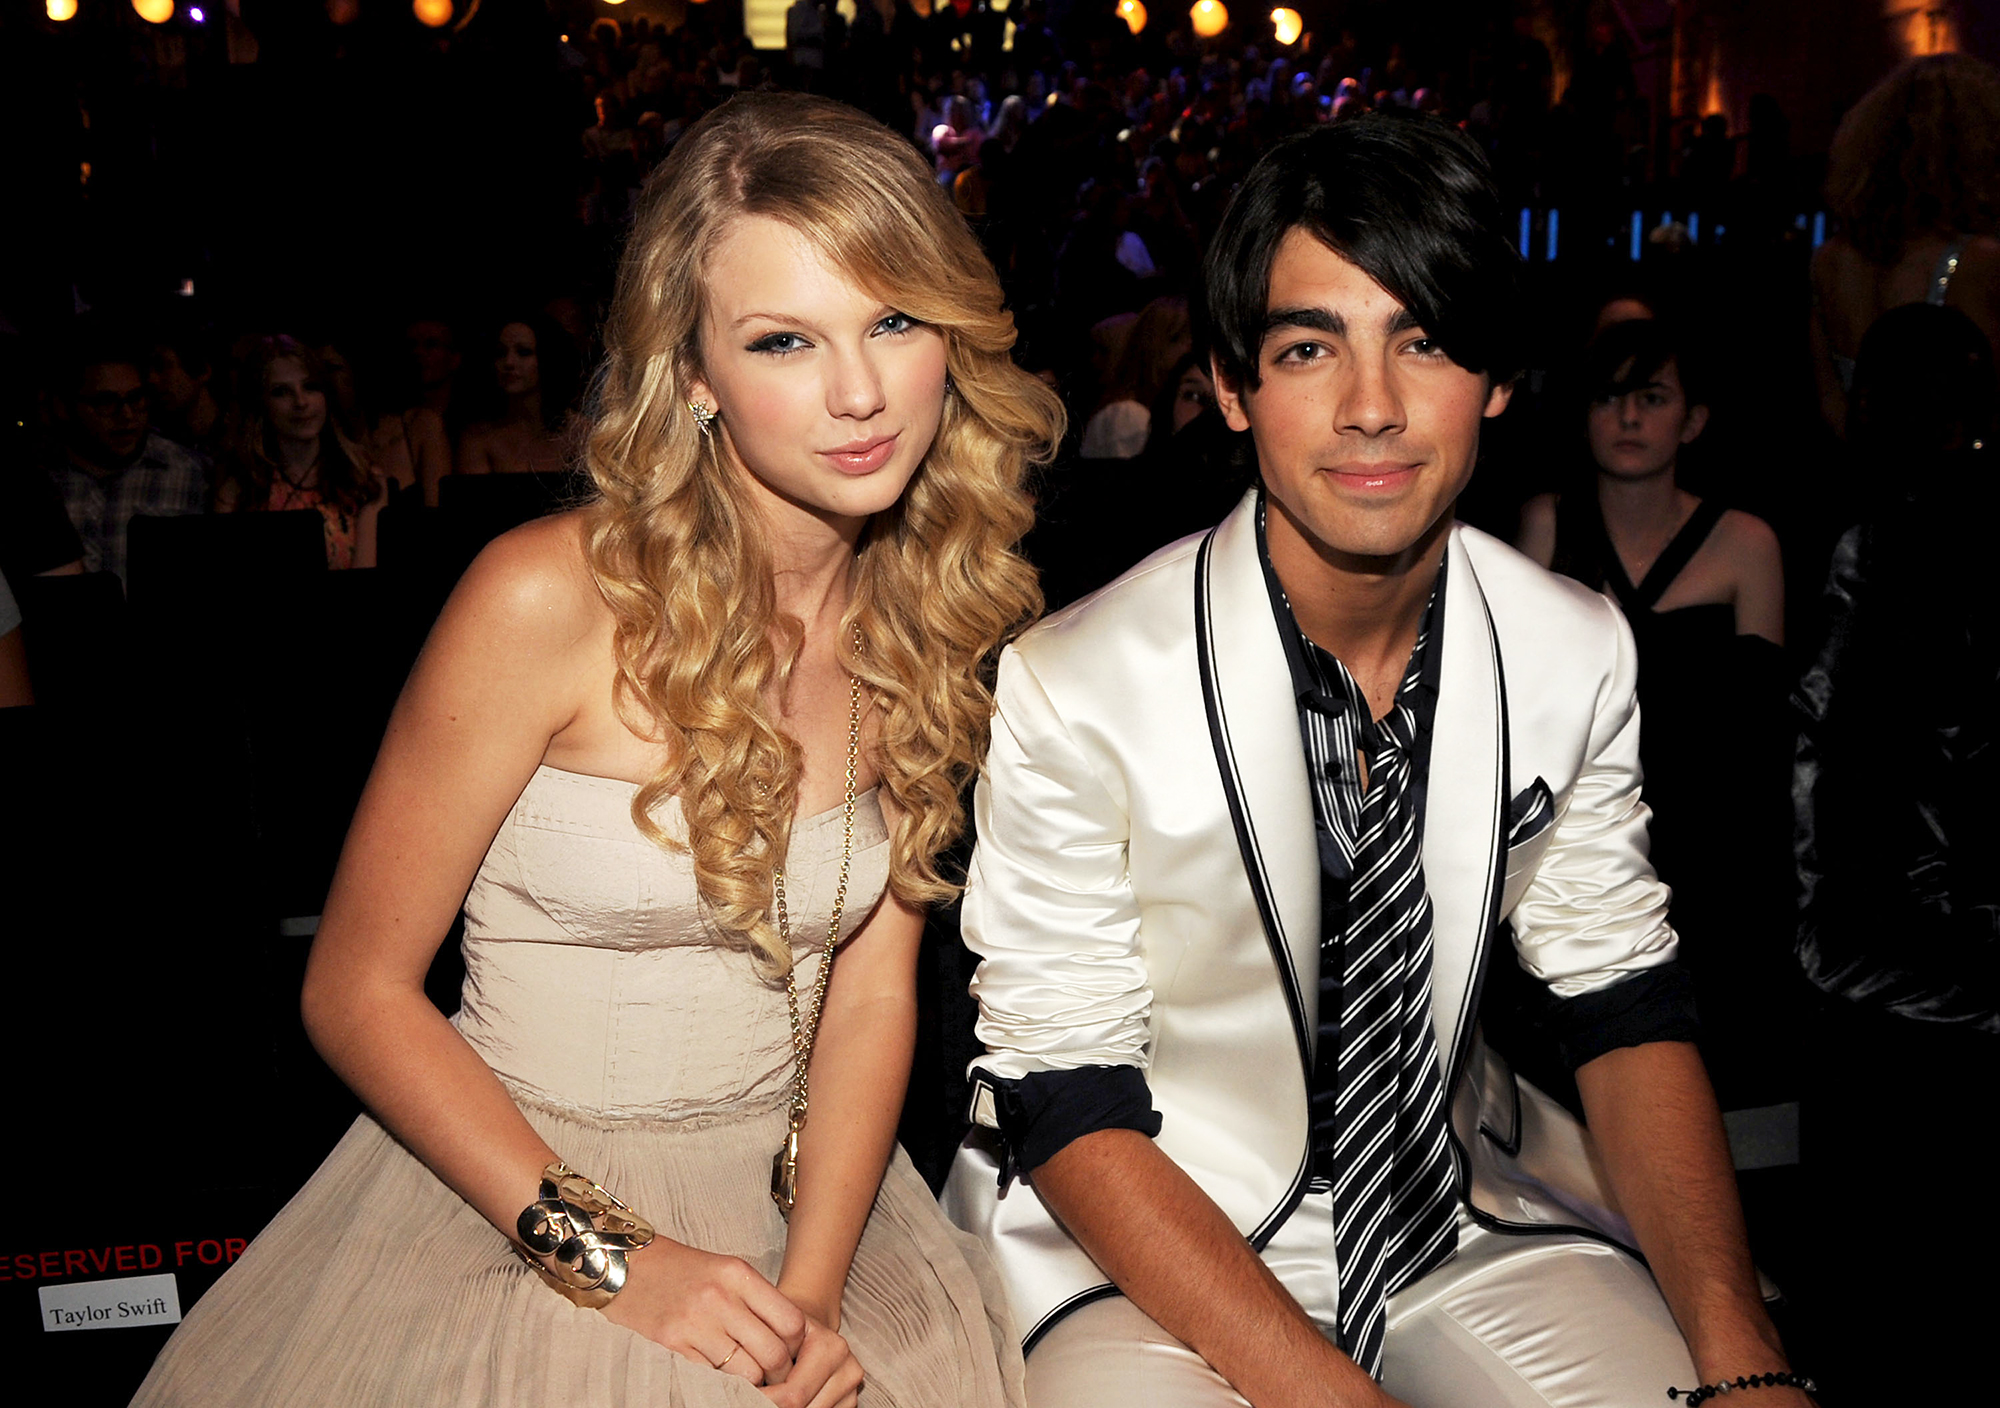 Taylor Swift S Dating History Timeline Of Famous Exes Boyfriends